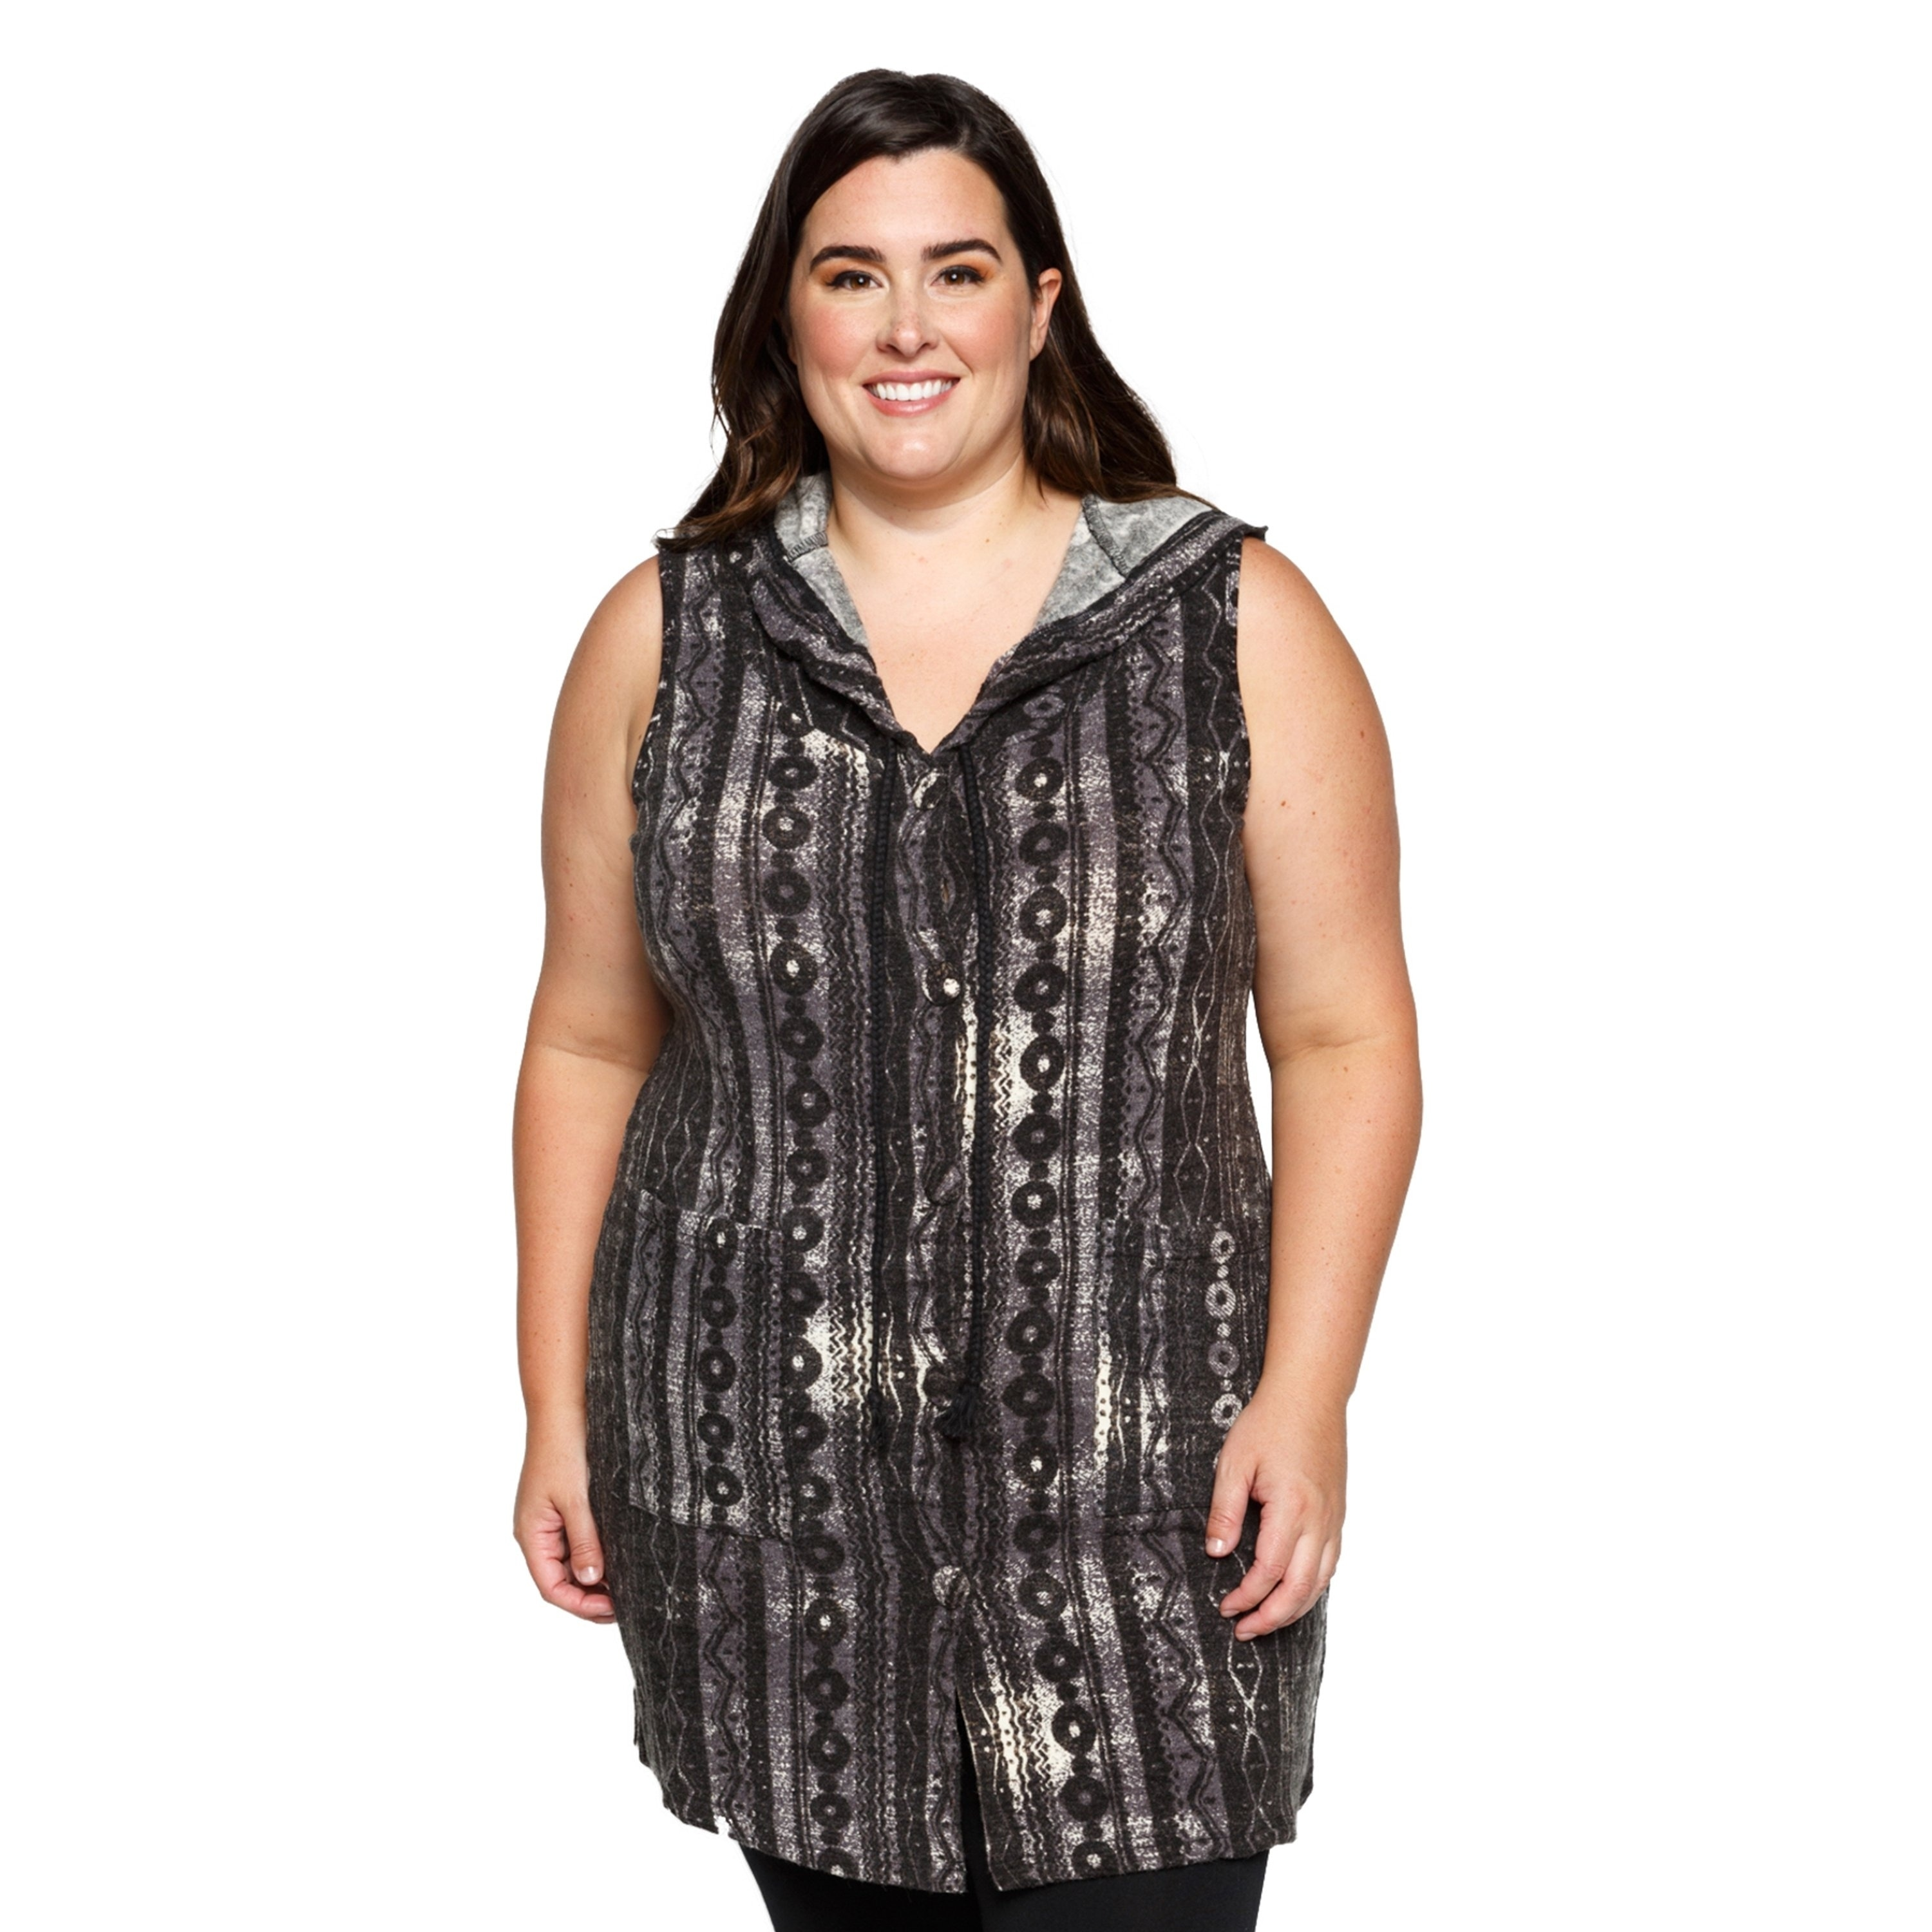 efd86031e074cd Shop Xehar Womens Plus Size Sleeveless Hooded Boho Cardigan Sweater Vests -  Free Shipping On Orders Over  45 - Overstock.com - 17619444